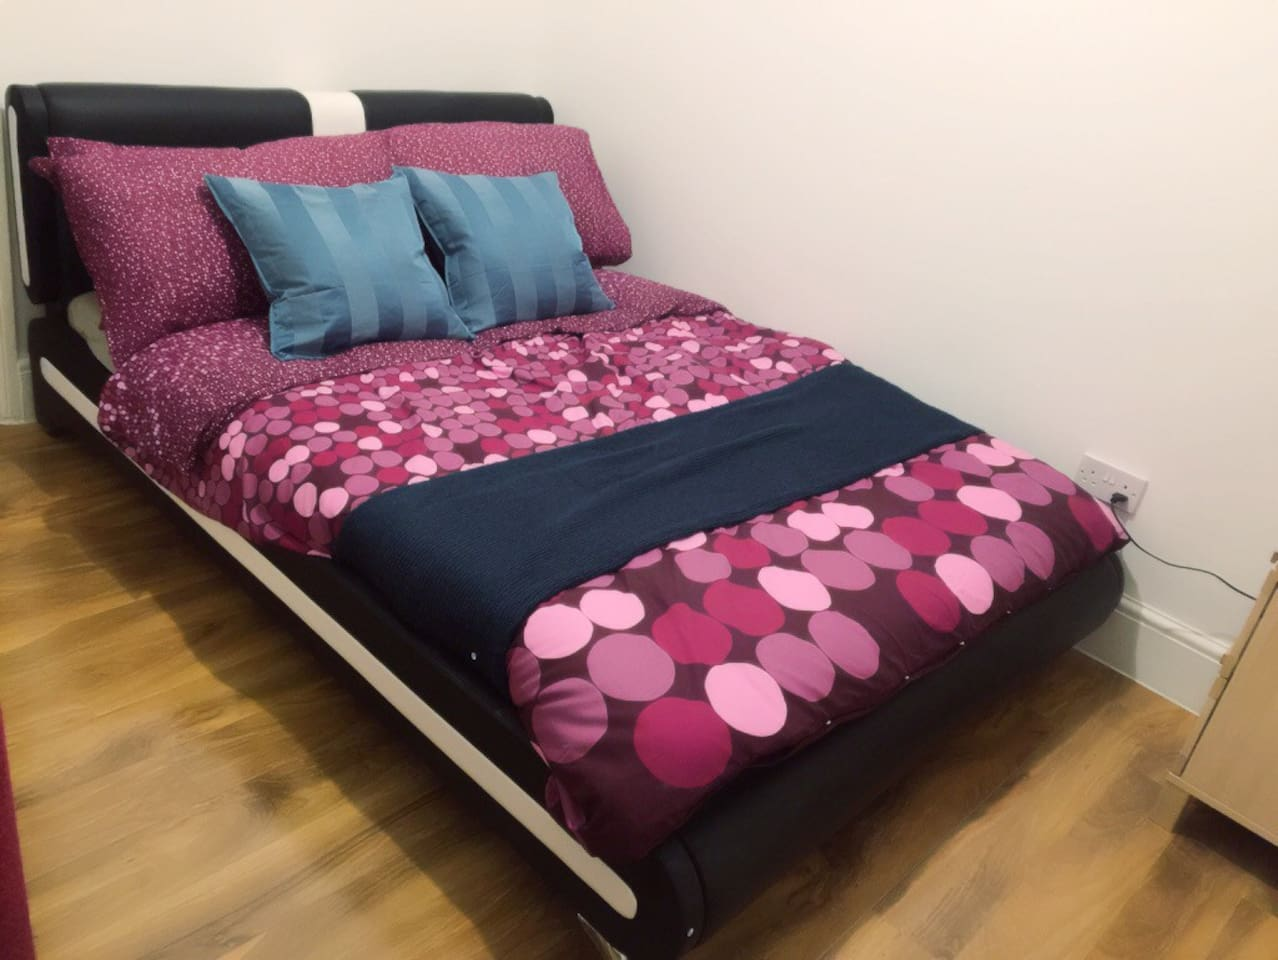 Dressed Italian double bed and part of newly laminated special floor